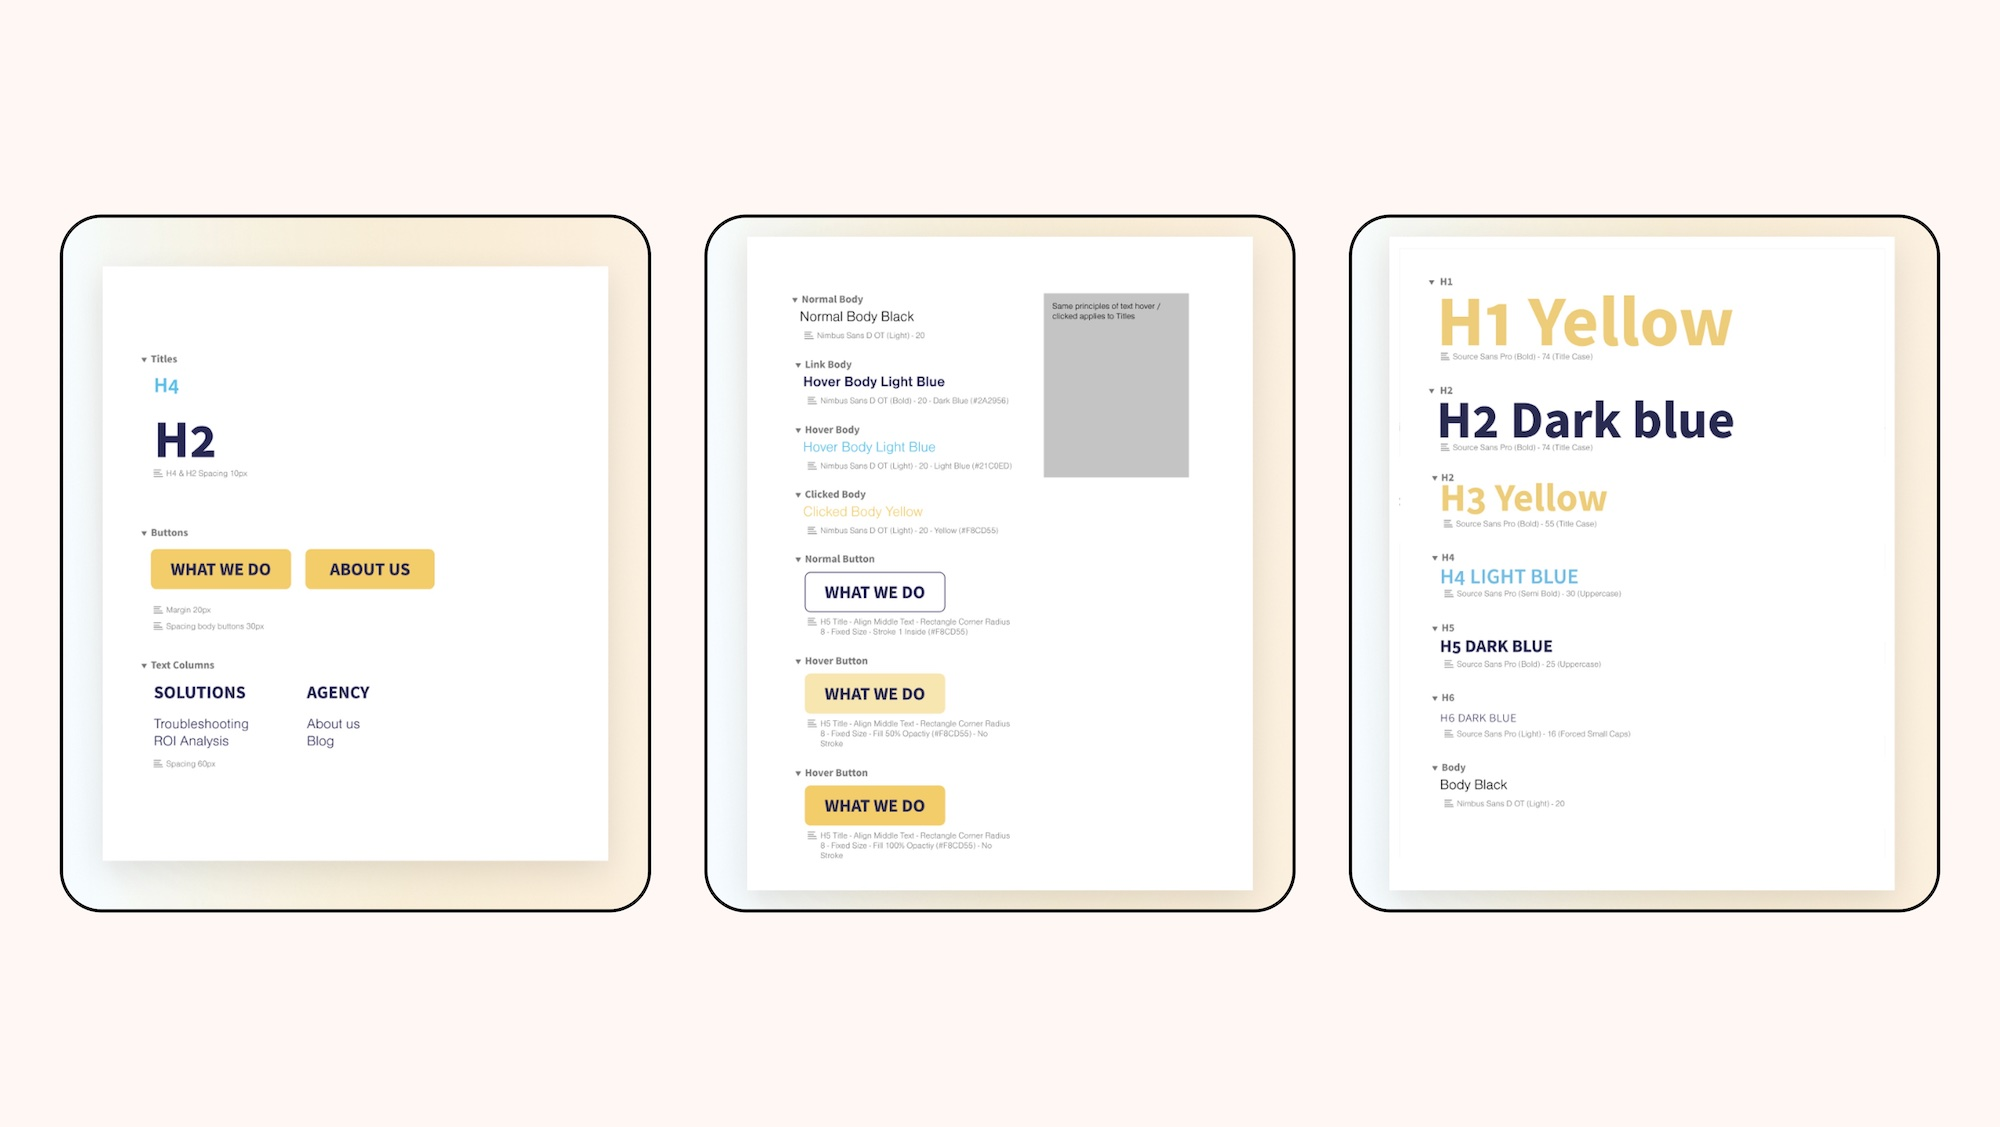 Style guides with font size for each heading, button interaction and spacing rules